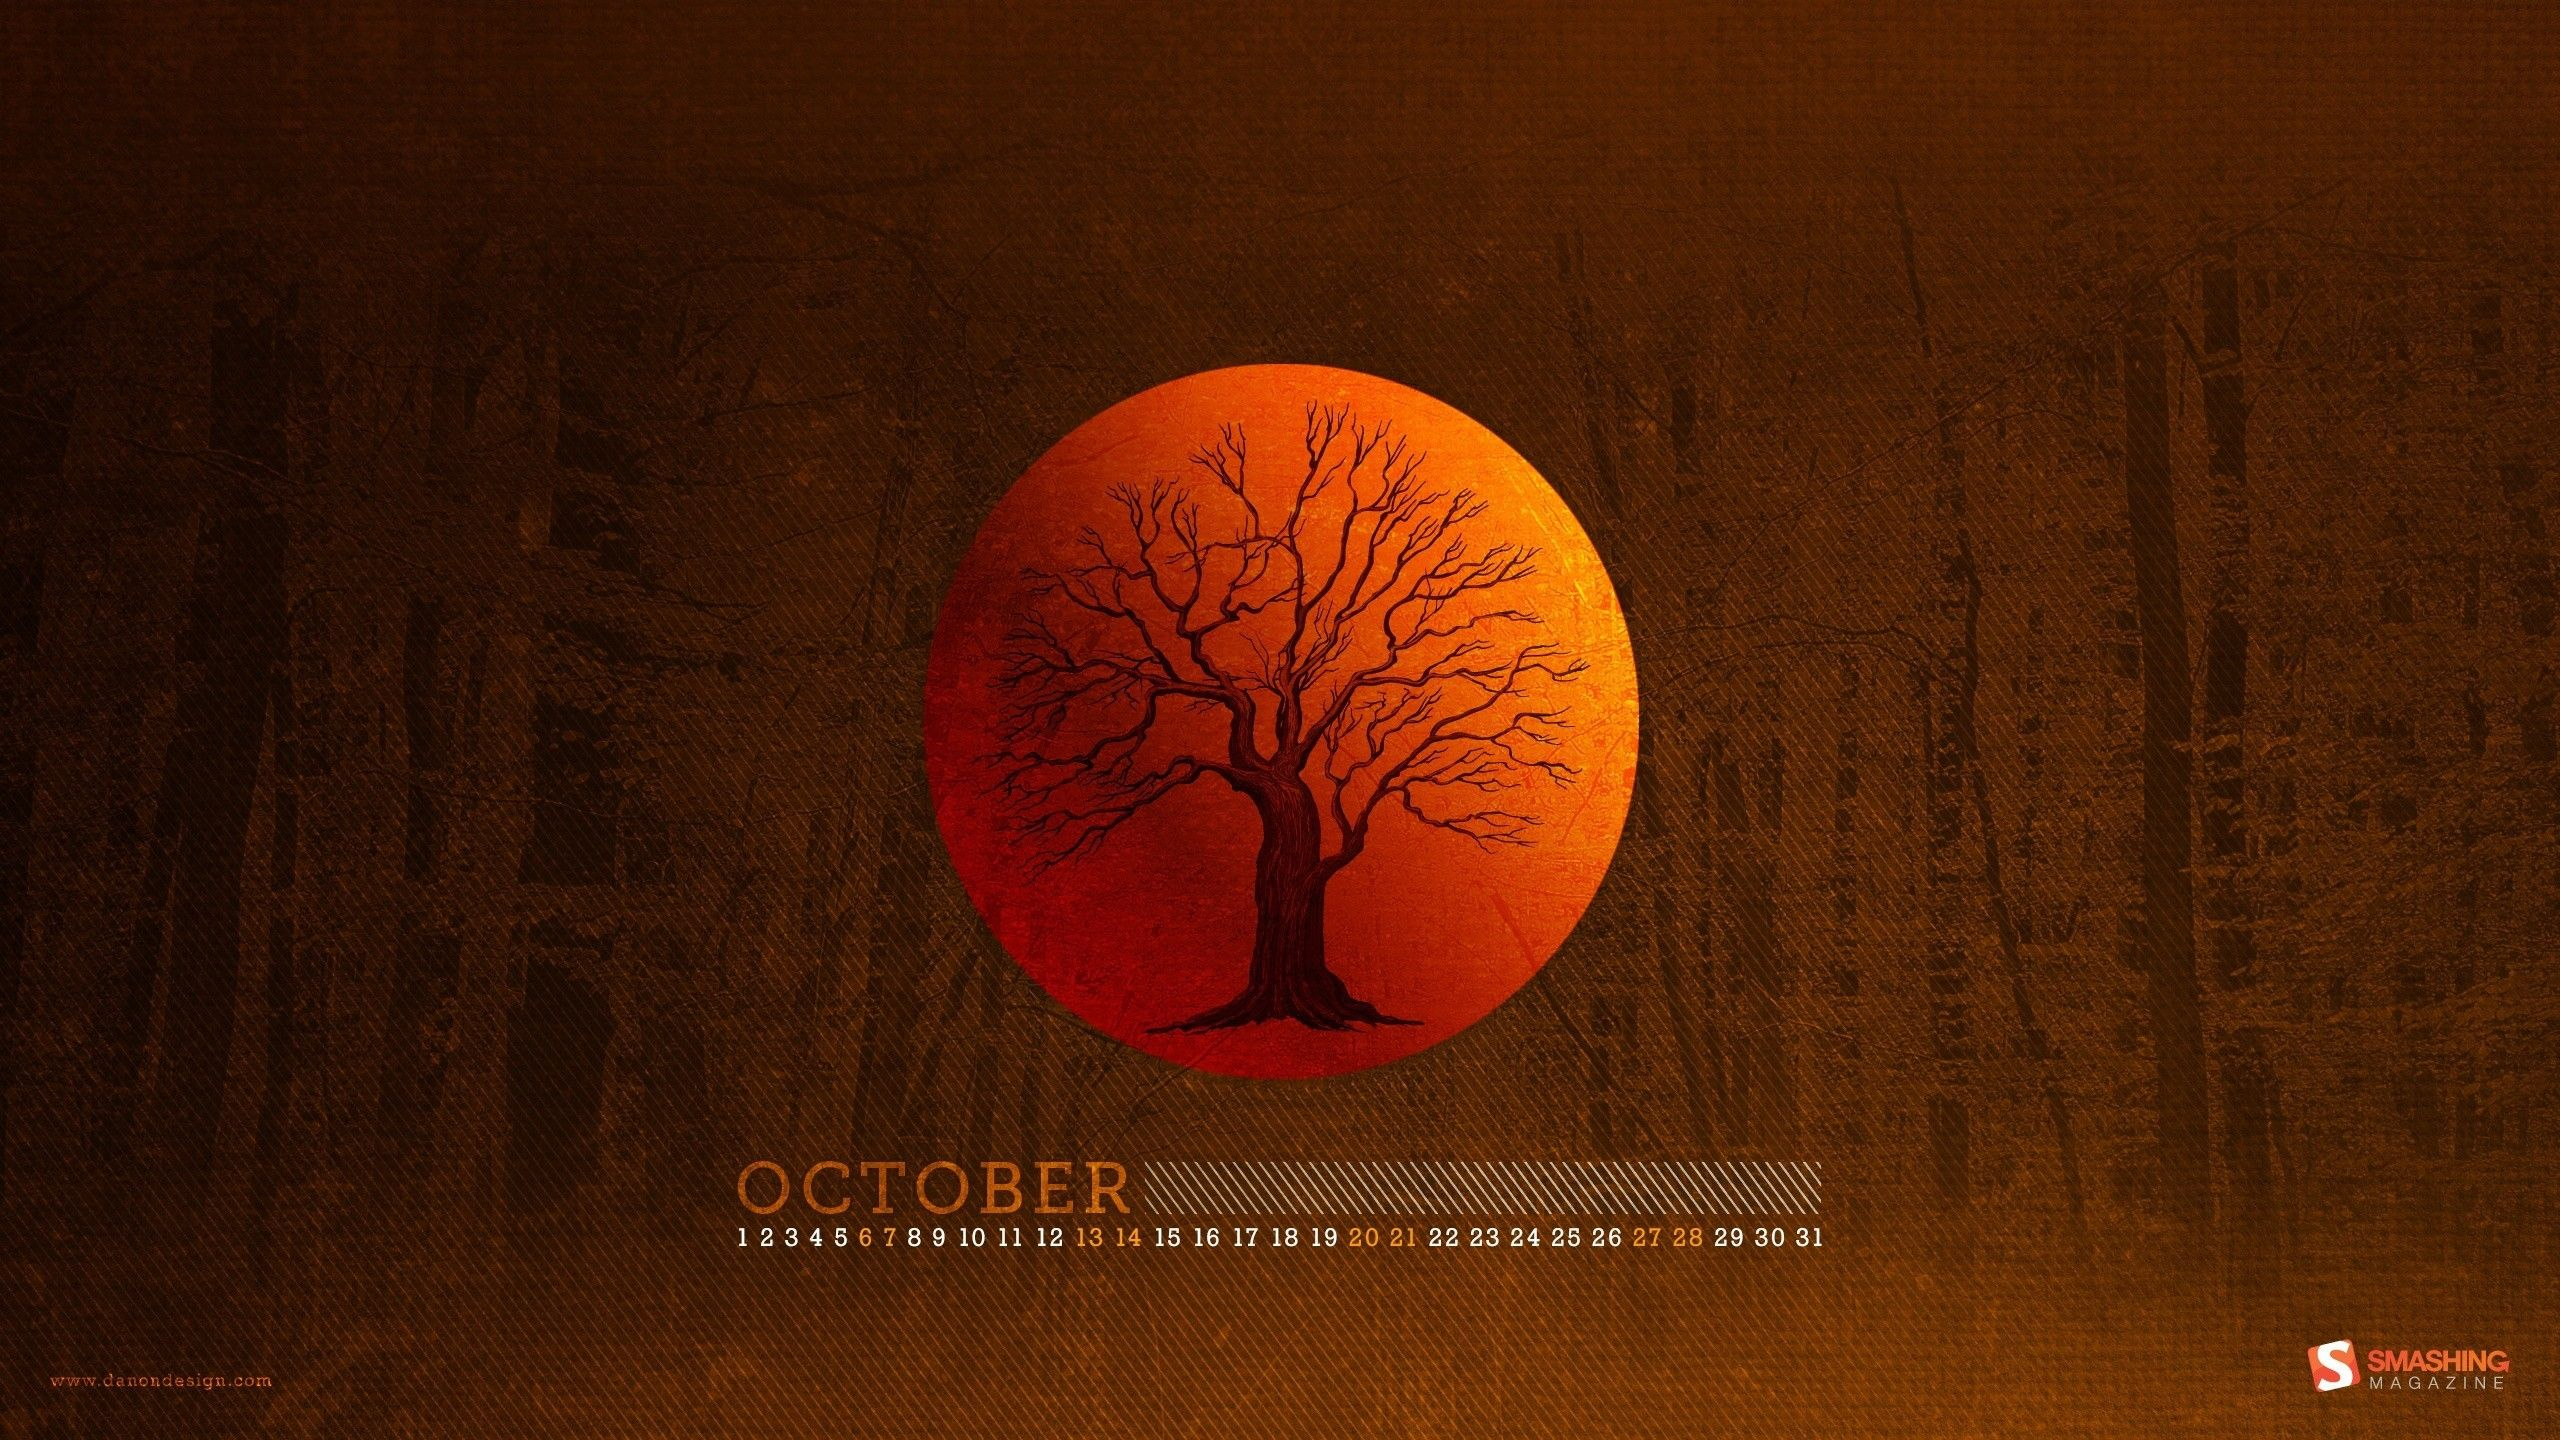 Trees Forest Moon Woods Calendar October Smashing Magazine within Smashing Magazine Calendar